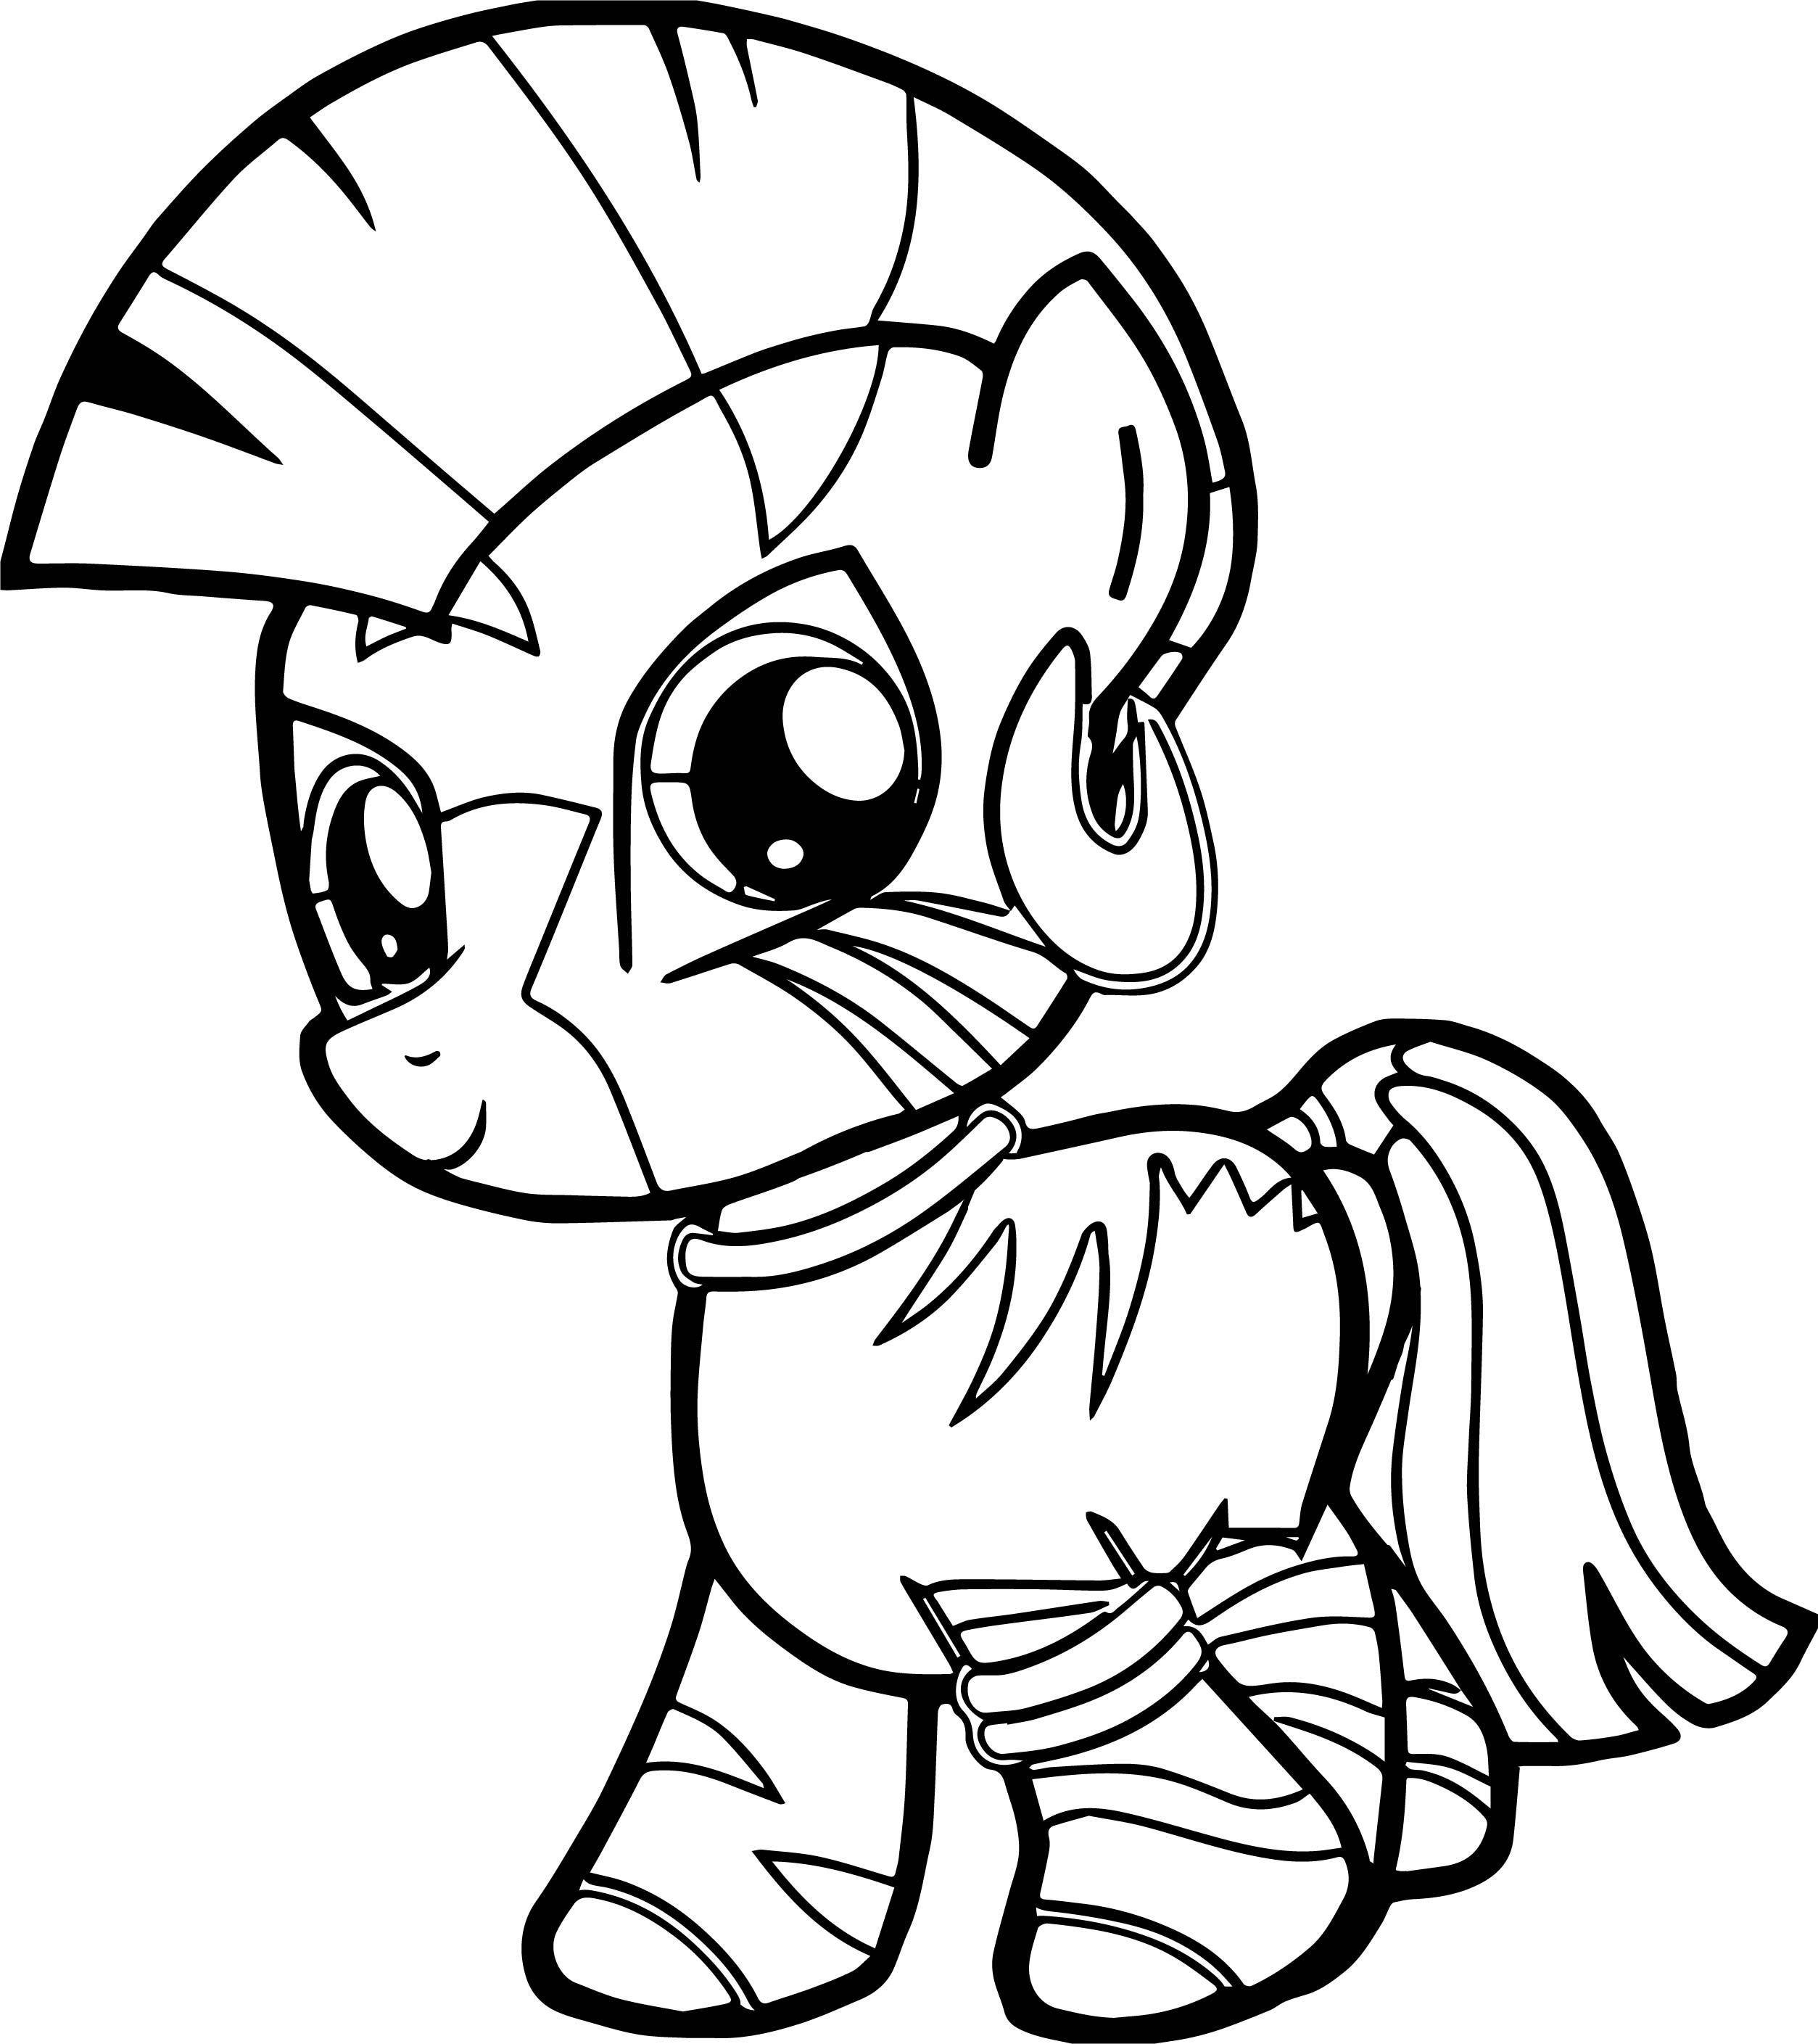 horse color pages - zecora filly very cute baby horse coloring page